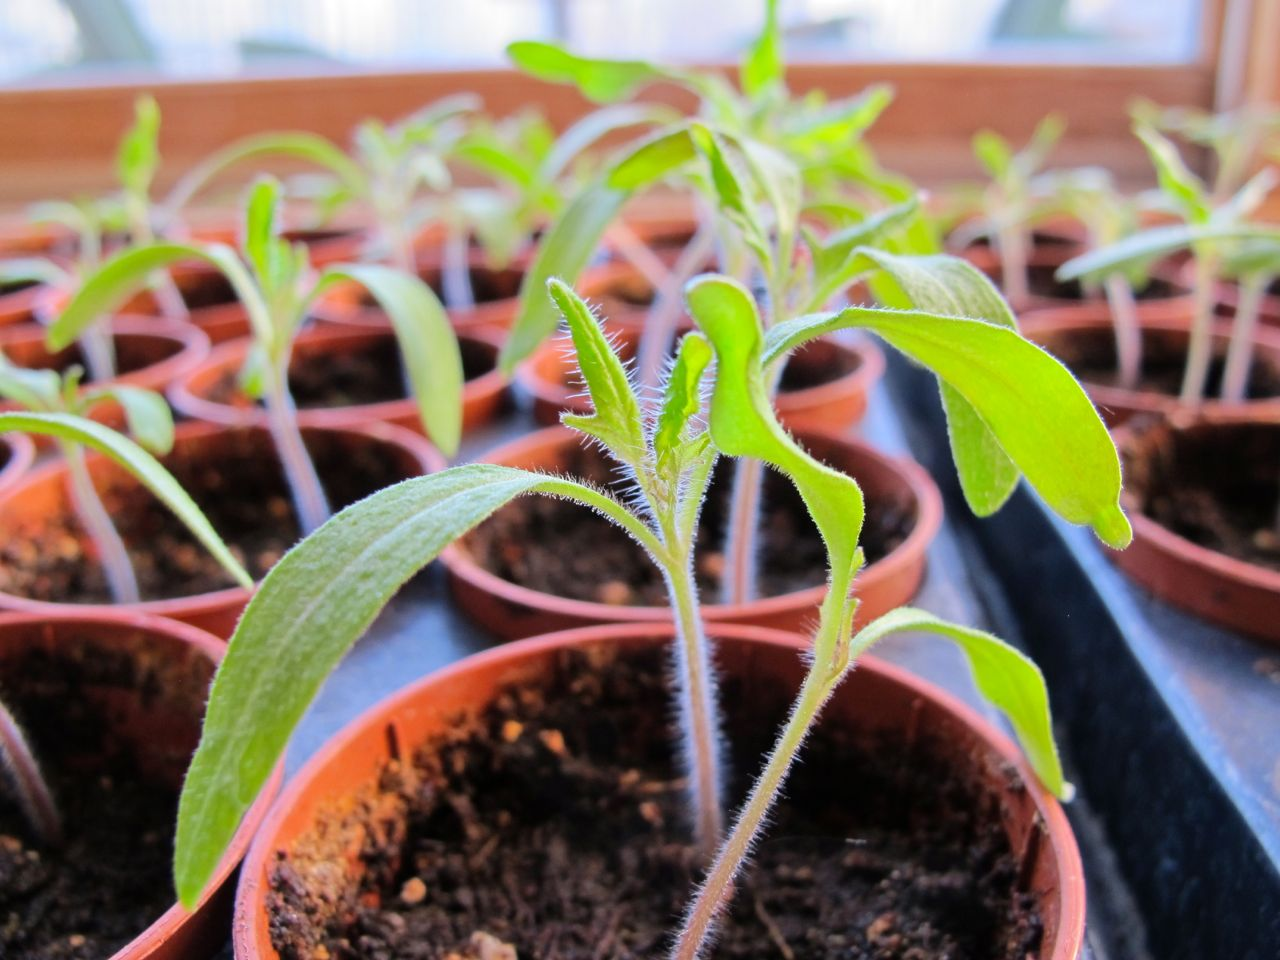 Black krim seedlings with their first real leaves growing up between the outstretched cotyledons or seed leaves.